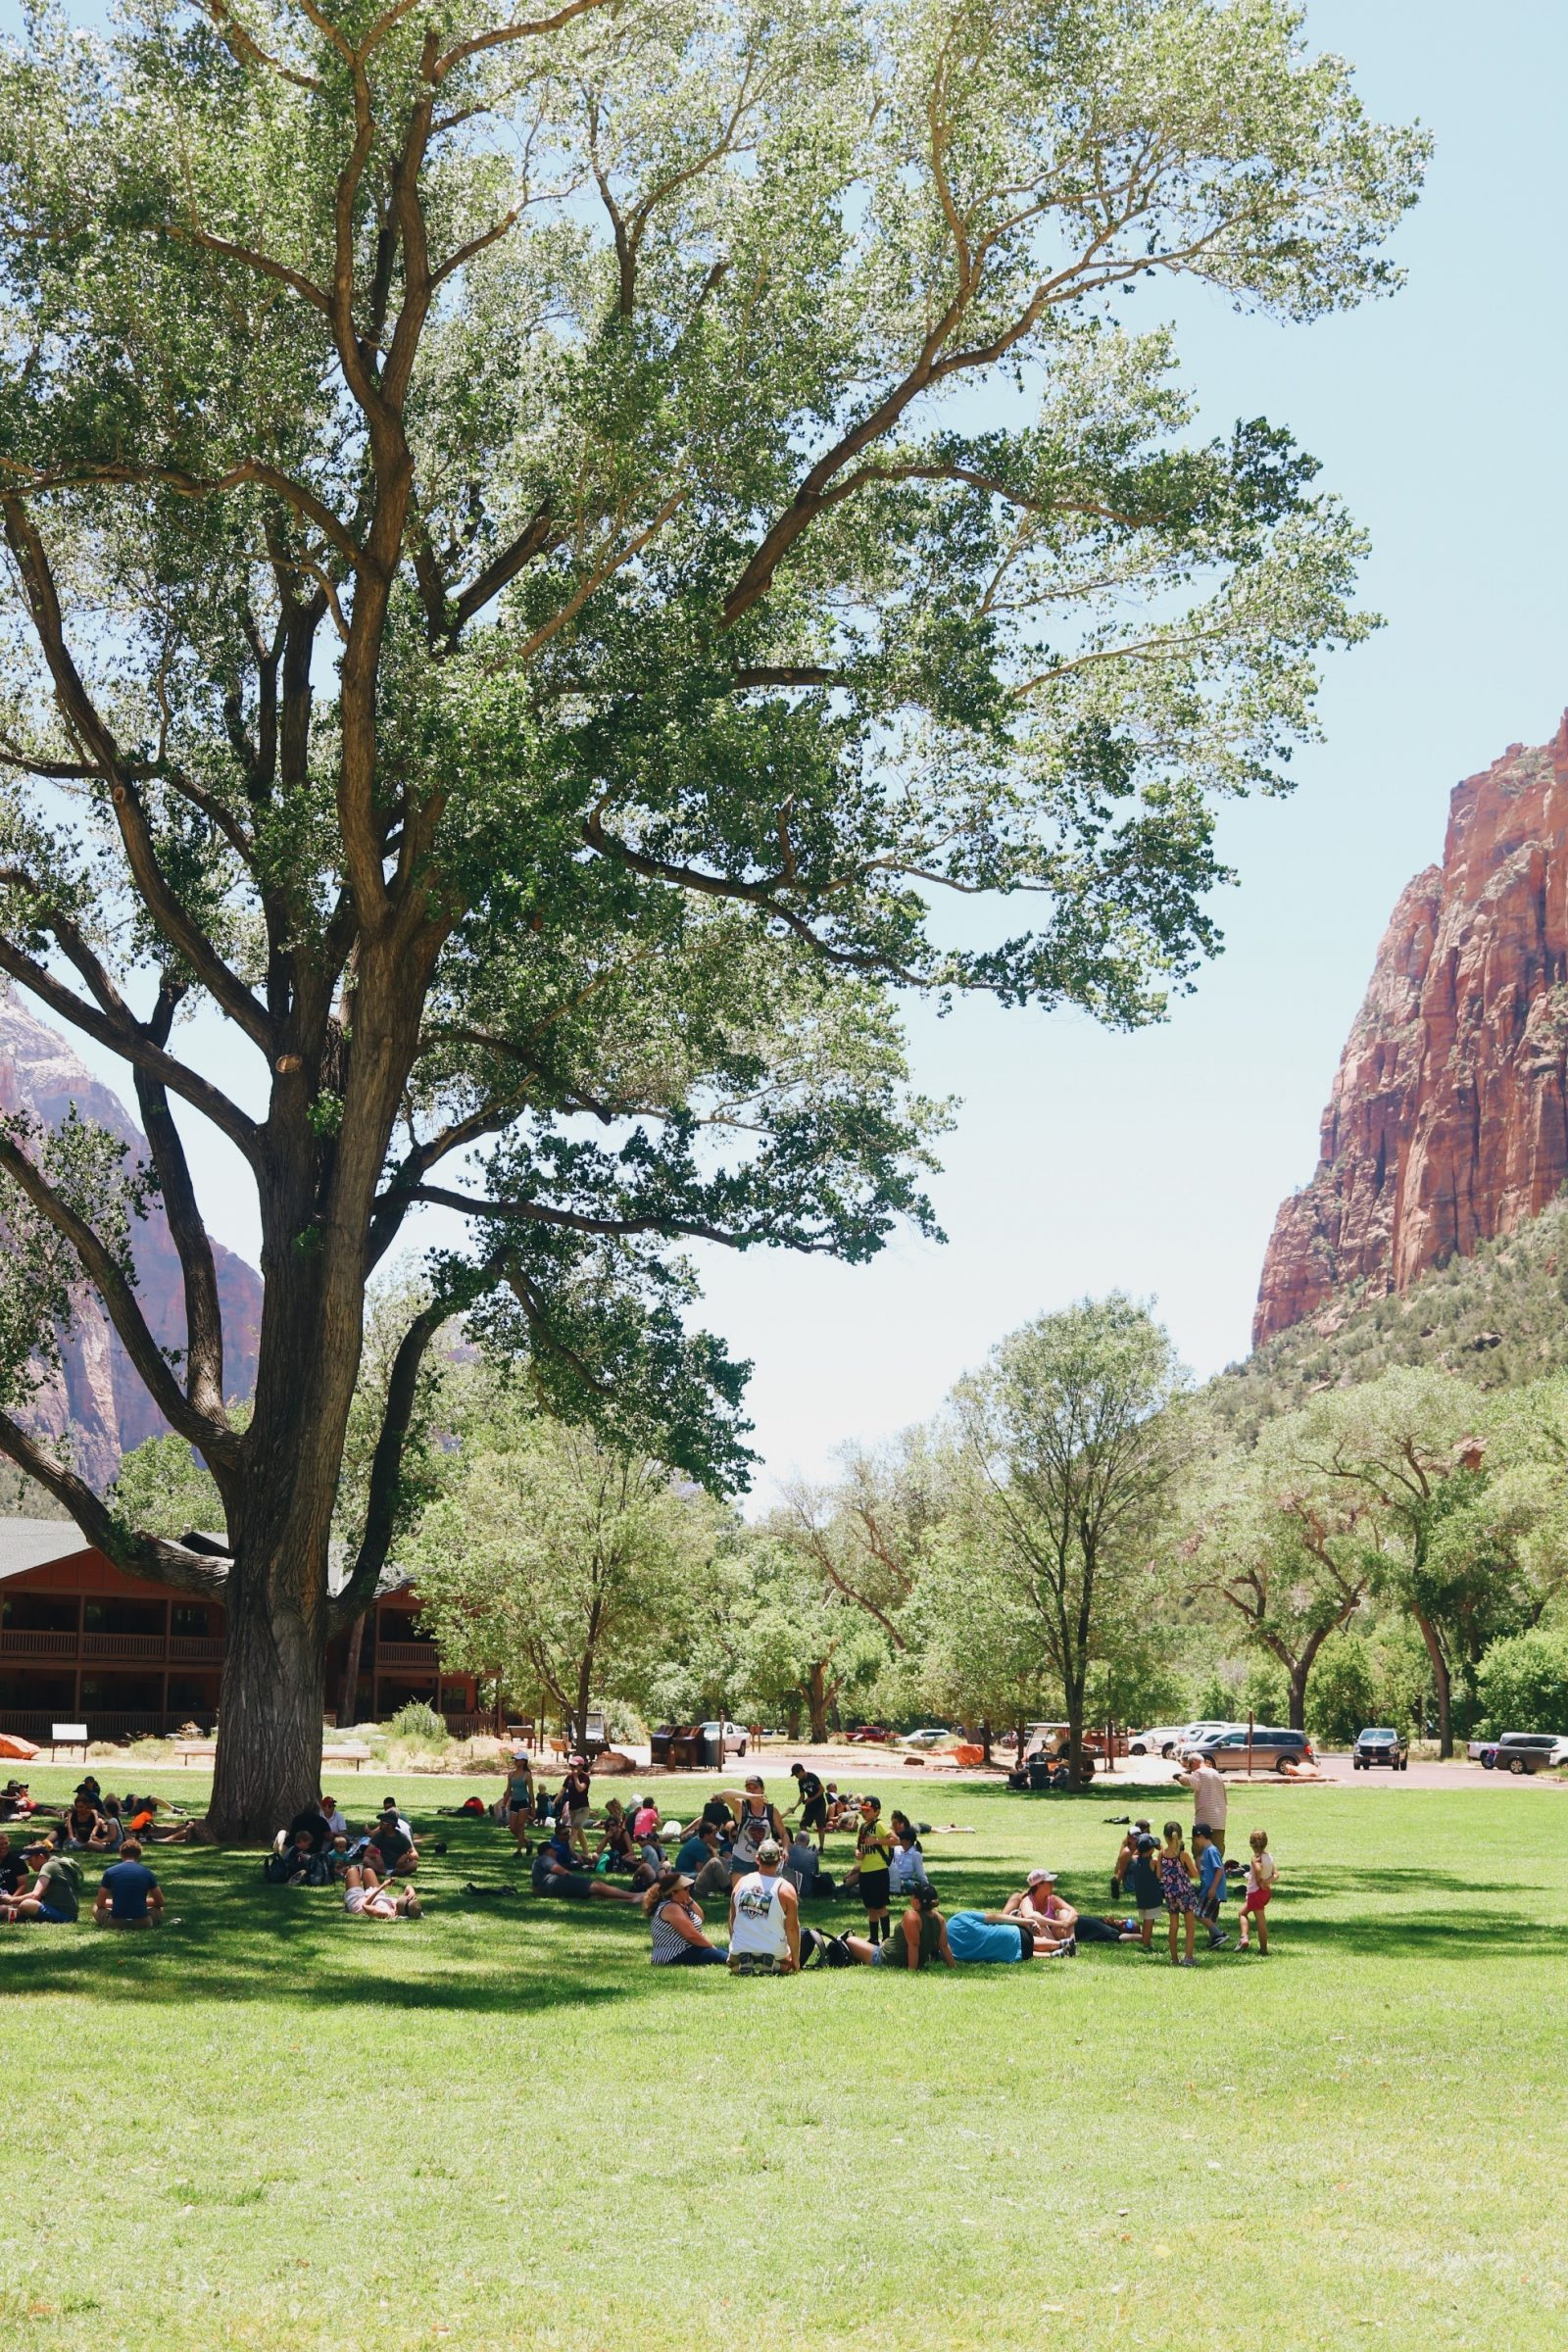 Under the shade of Zion